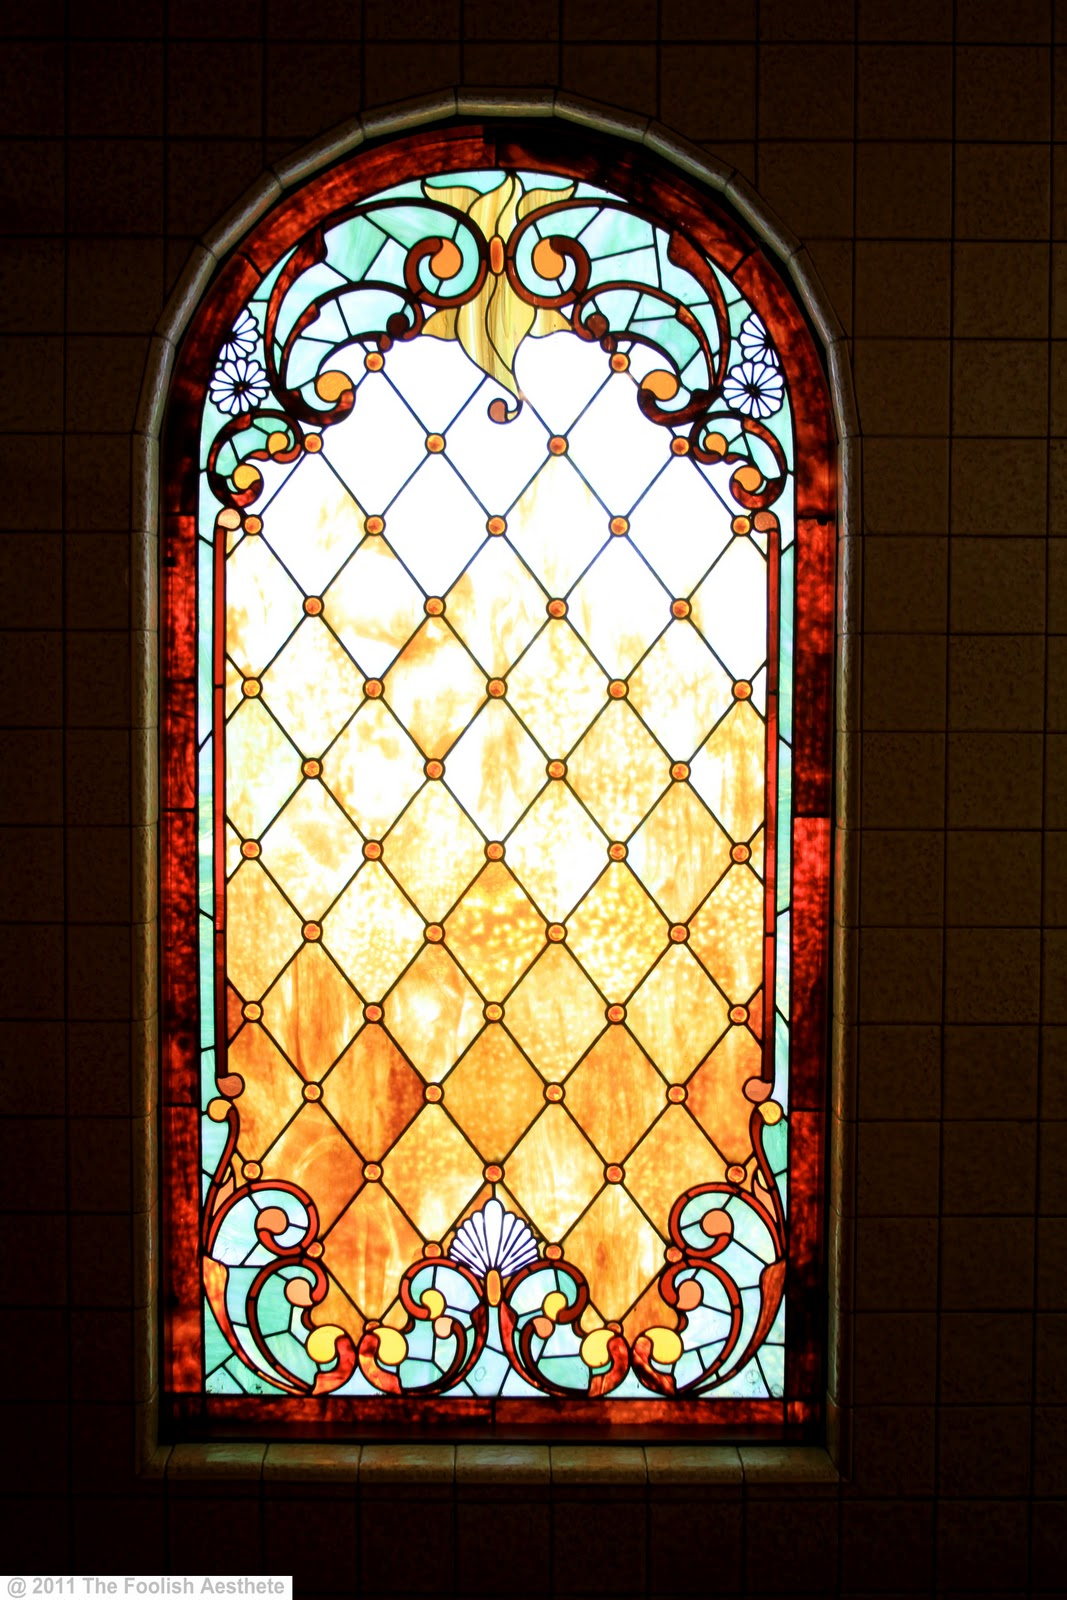 Stained Glass Windows : The foolish aesthete magical mystery tour